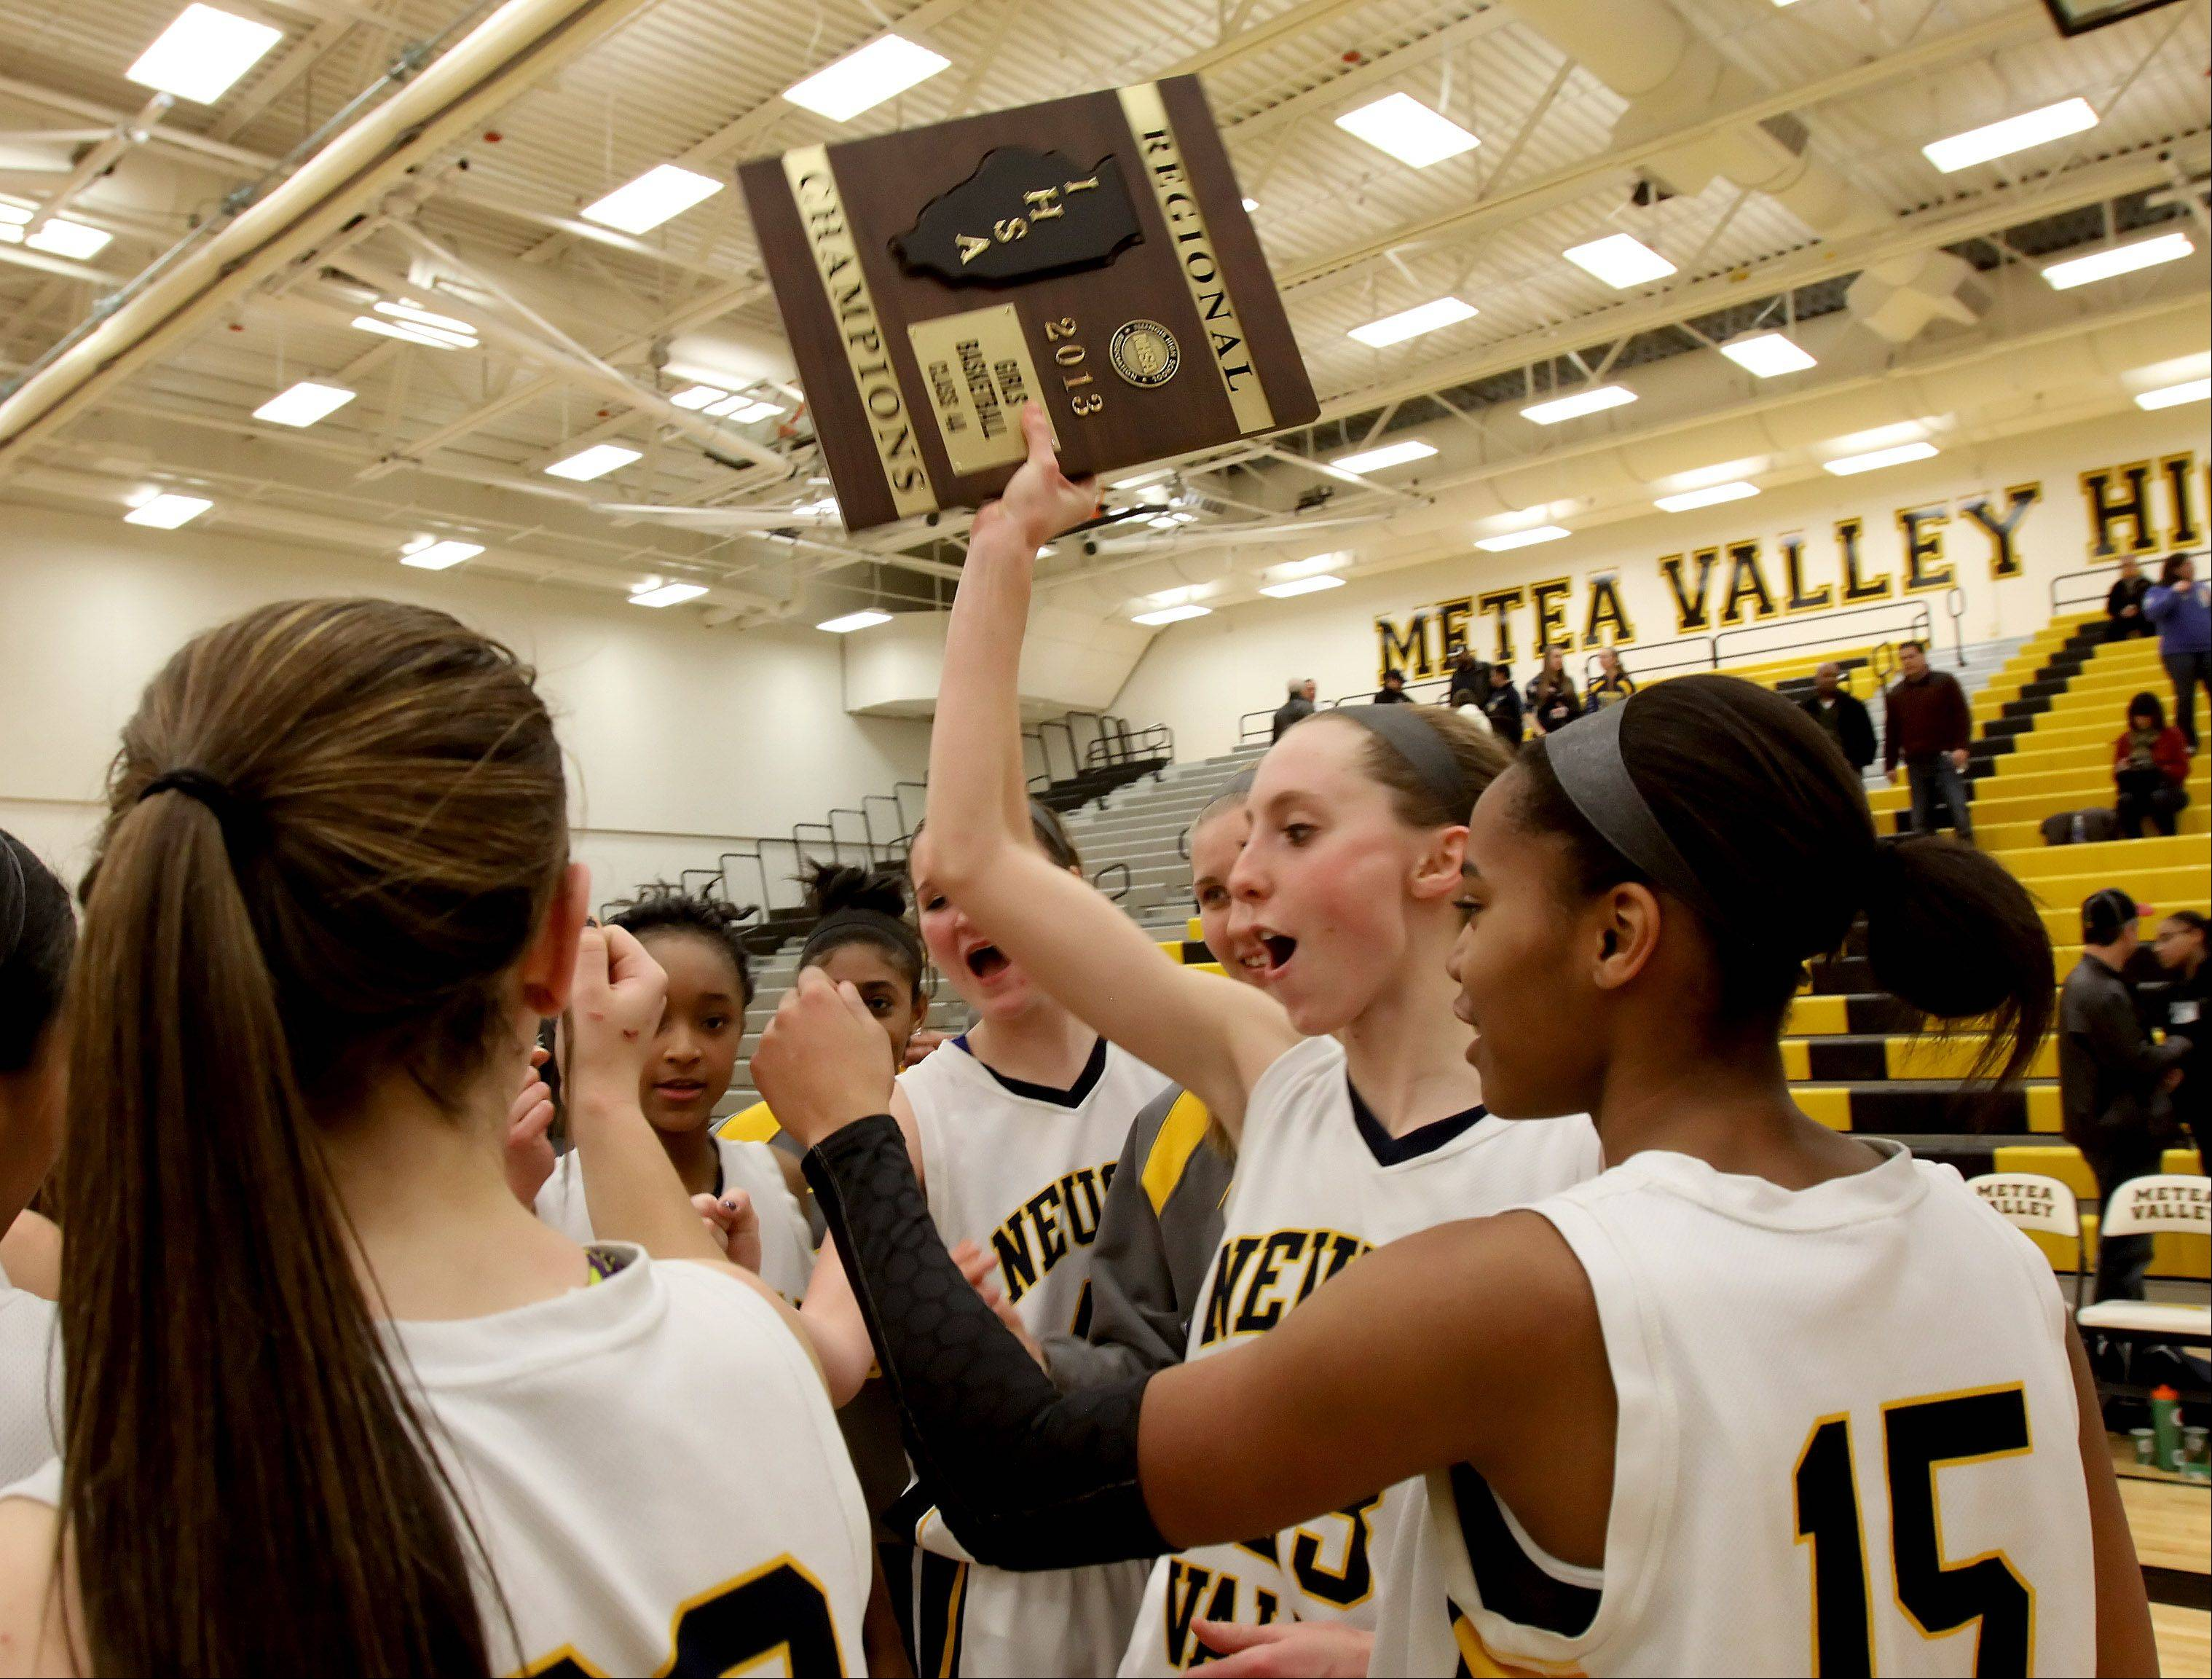 Neuqua Valley are regional champs in their win over Metea Valley in girls basketball Class 4A regional final on Friday in Aurora.